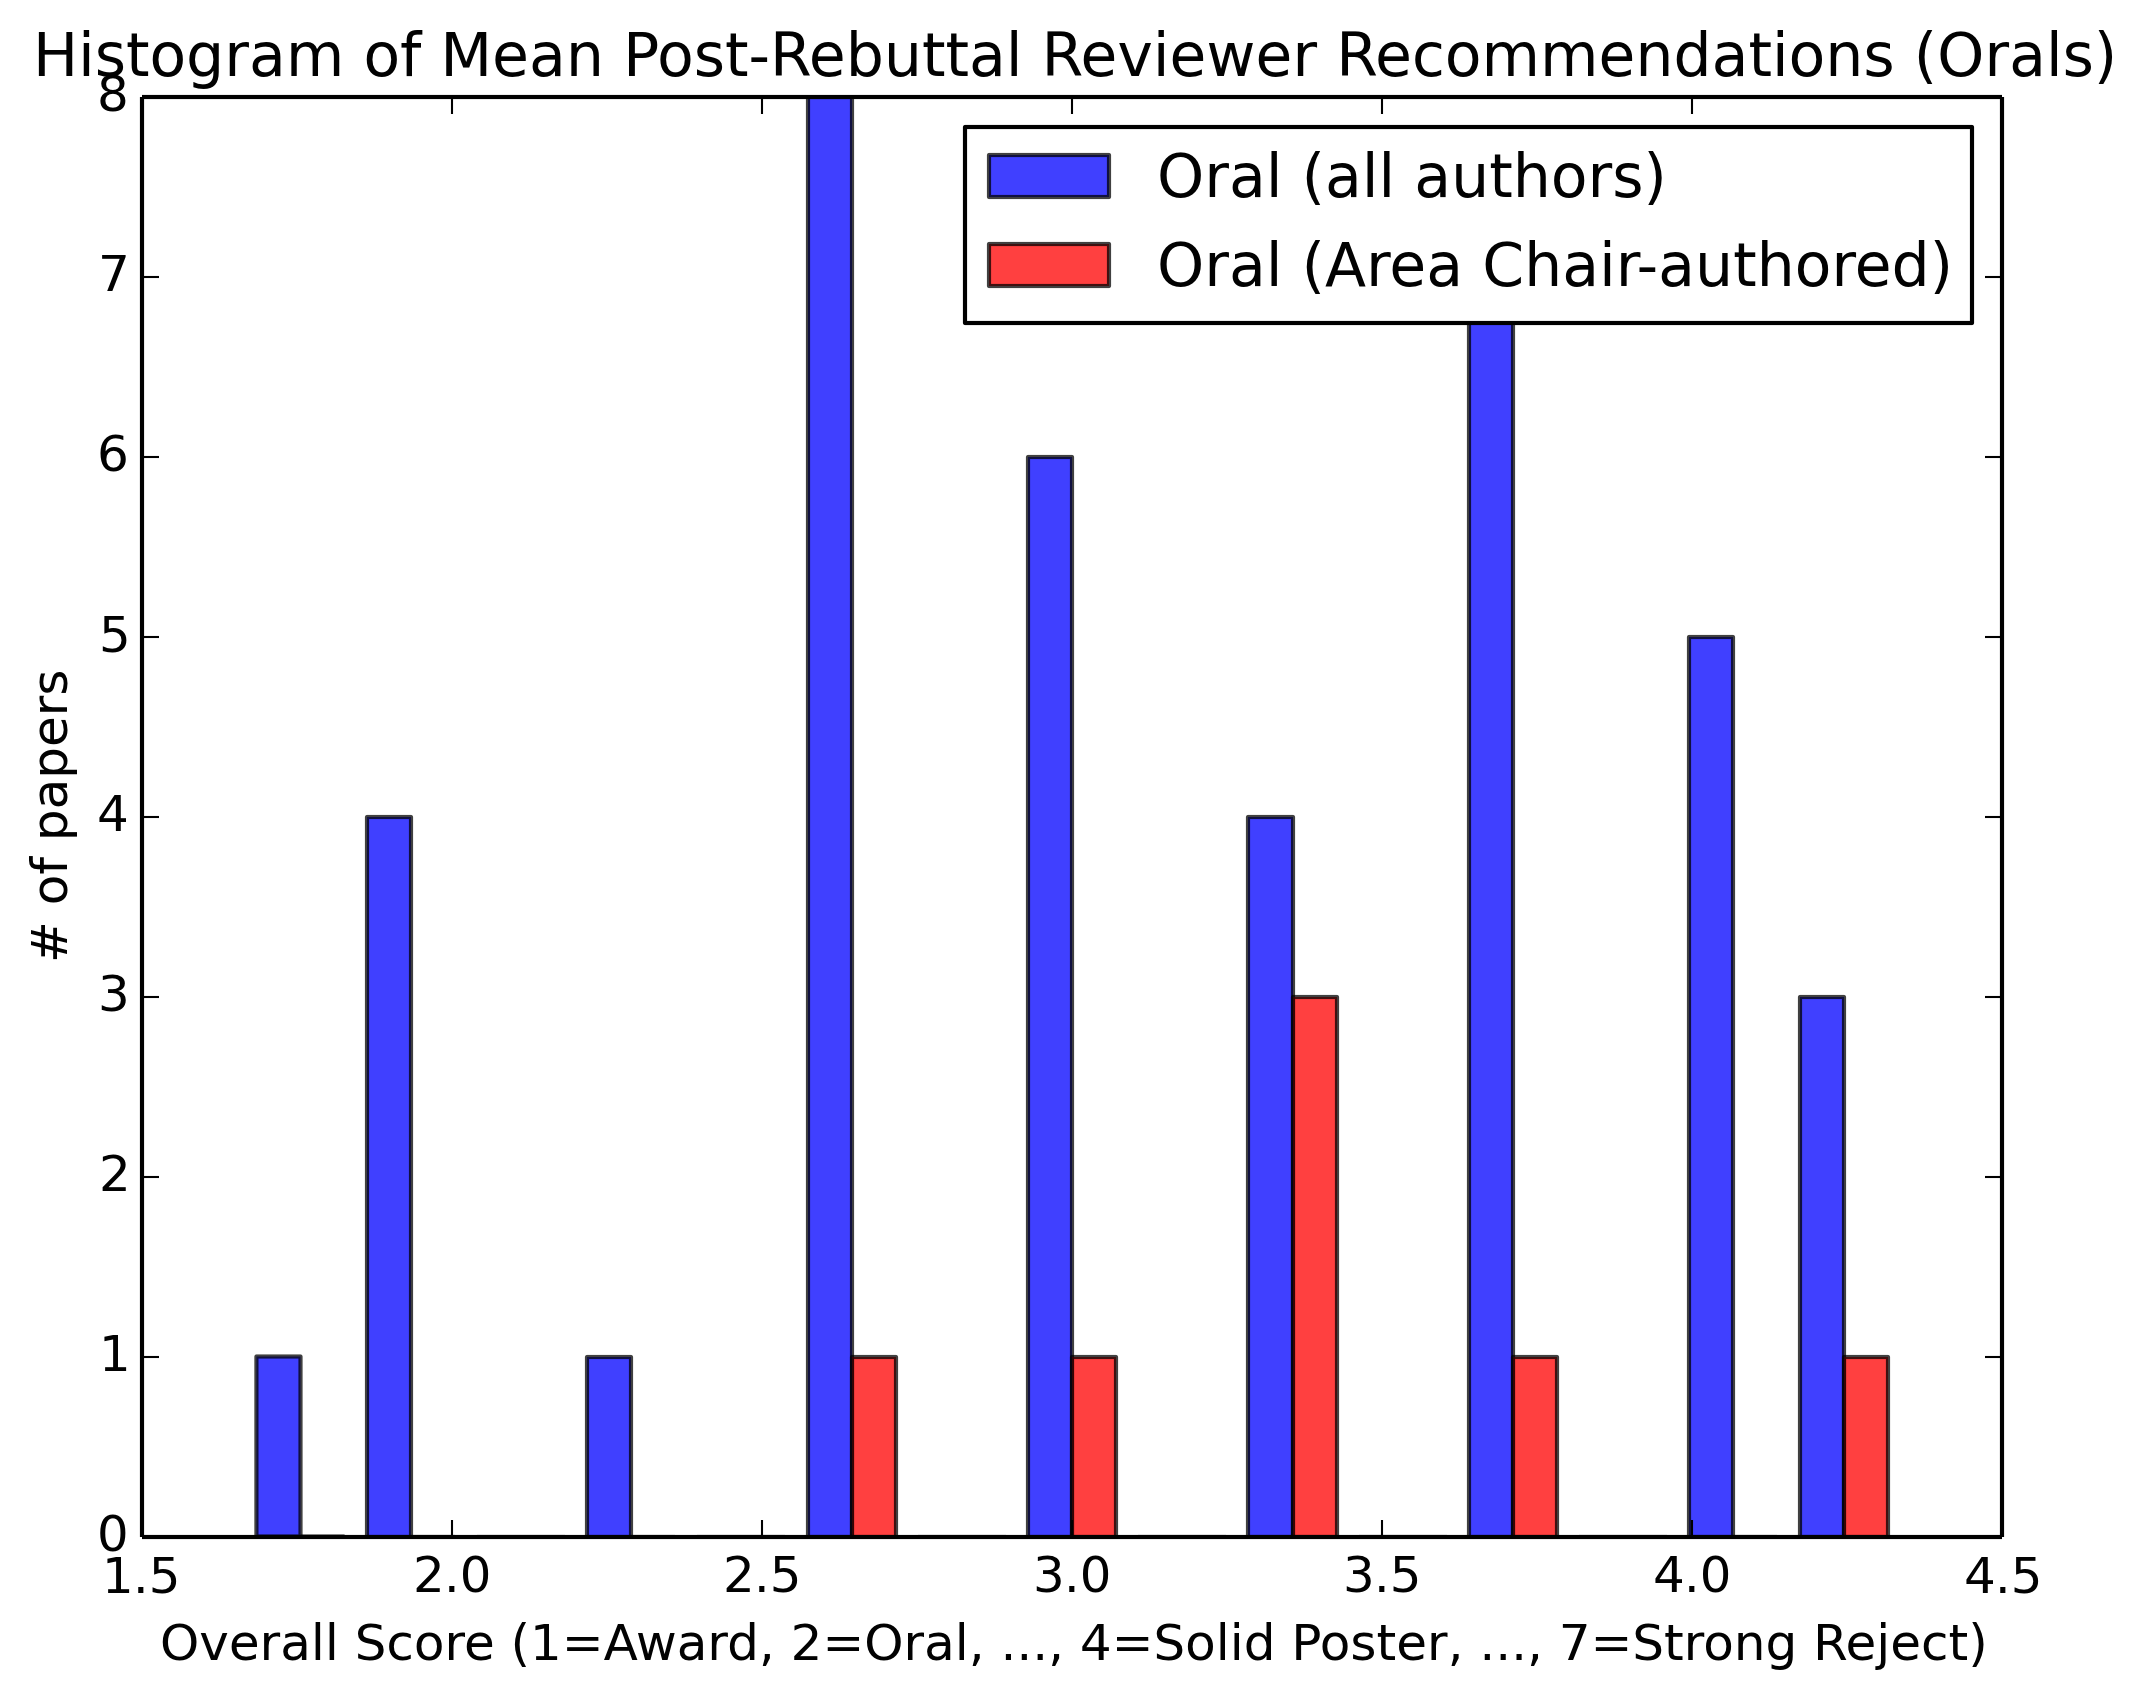 Mean Post-Rebuttal Reviewer Recommendations (All Accepted Papers)